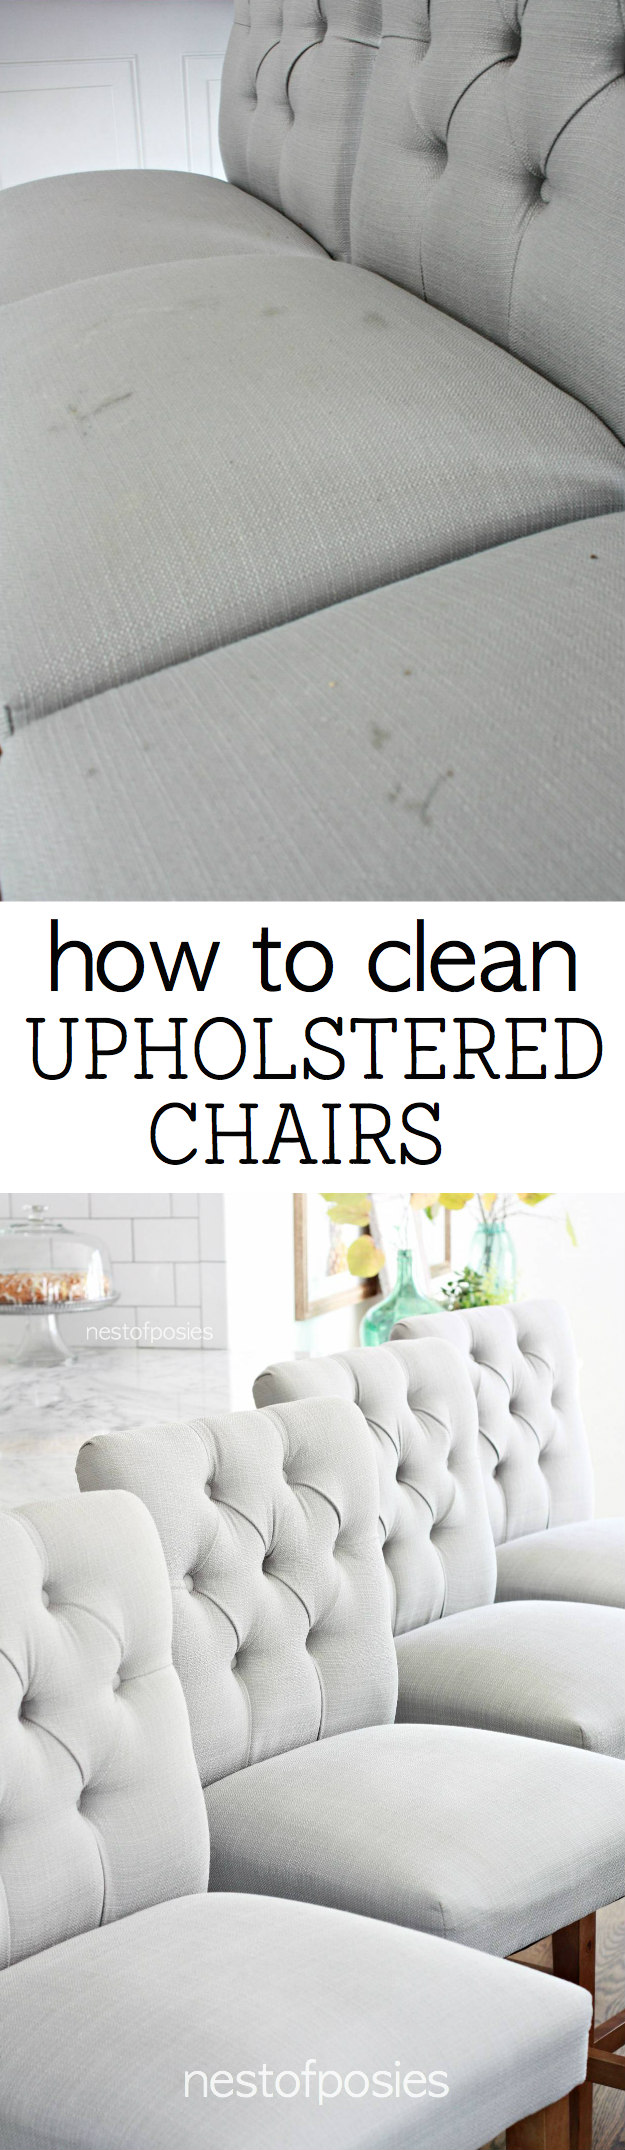 How To Clean Upholstered Chairs. My Cleaning Tricks Even With 3 Young Kids  Eating On